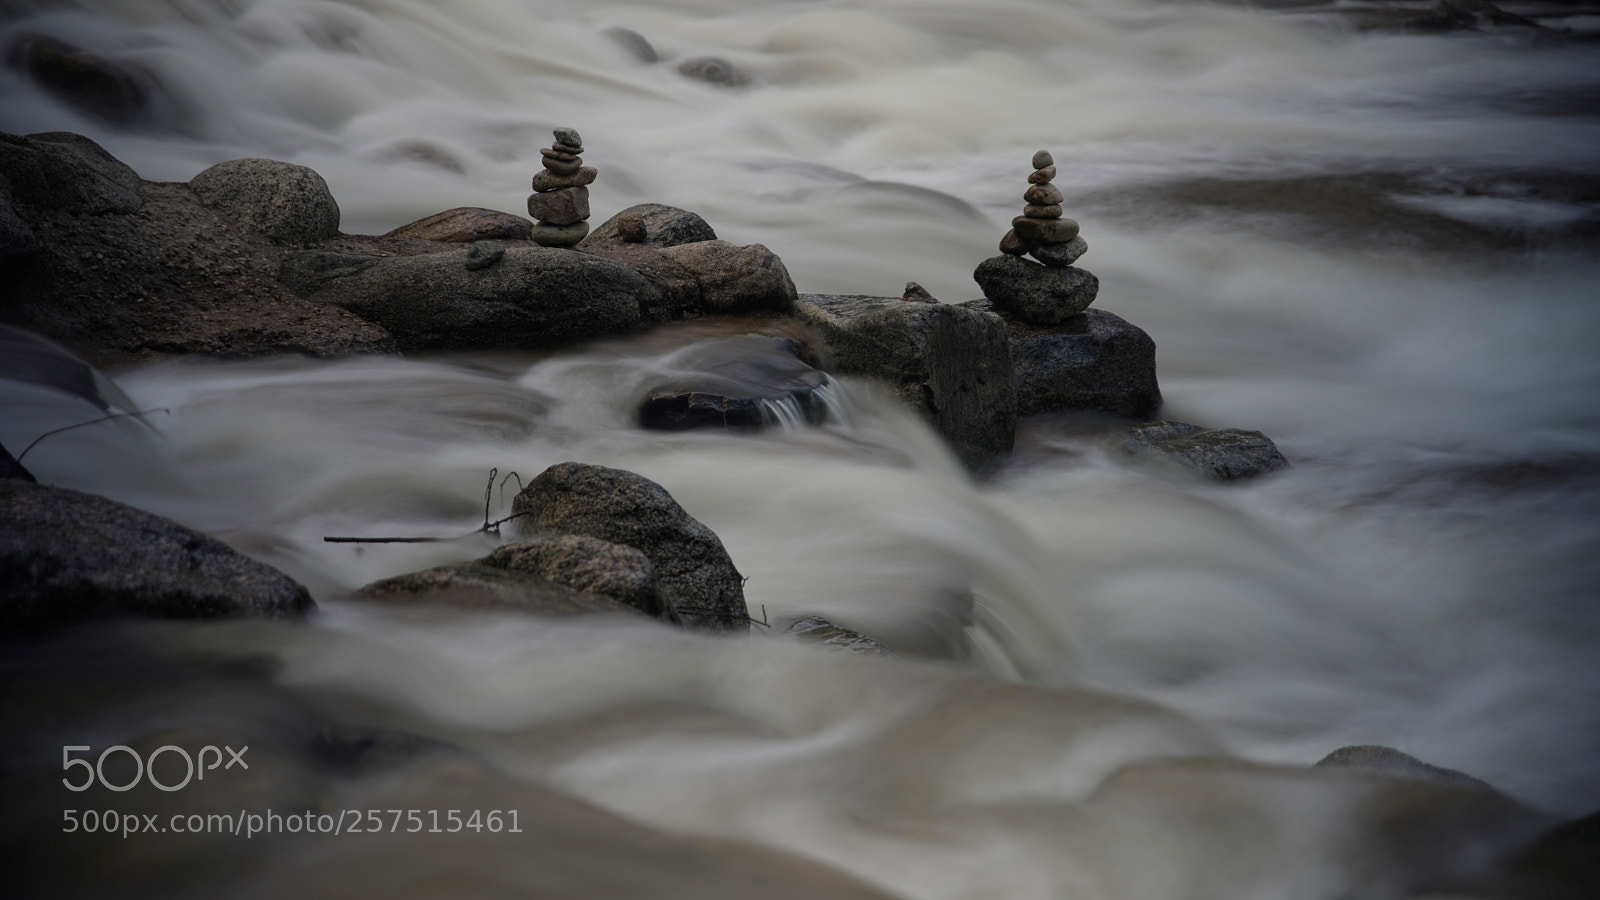 Creek Cairns, Sony ILCE-7RM2, Canon EF 400mm f/2.8L